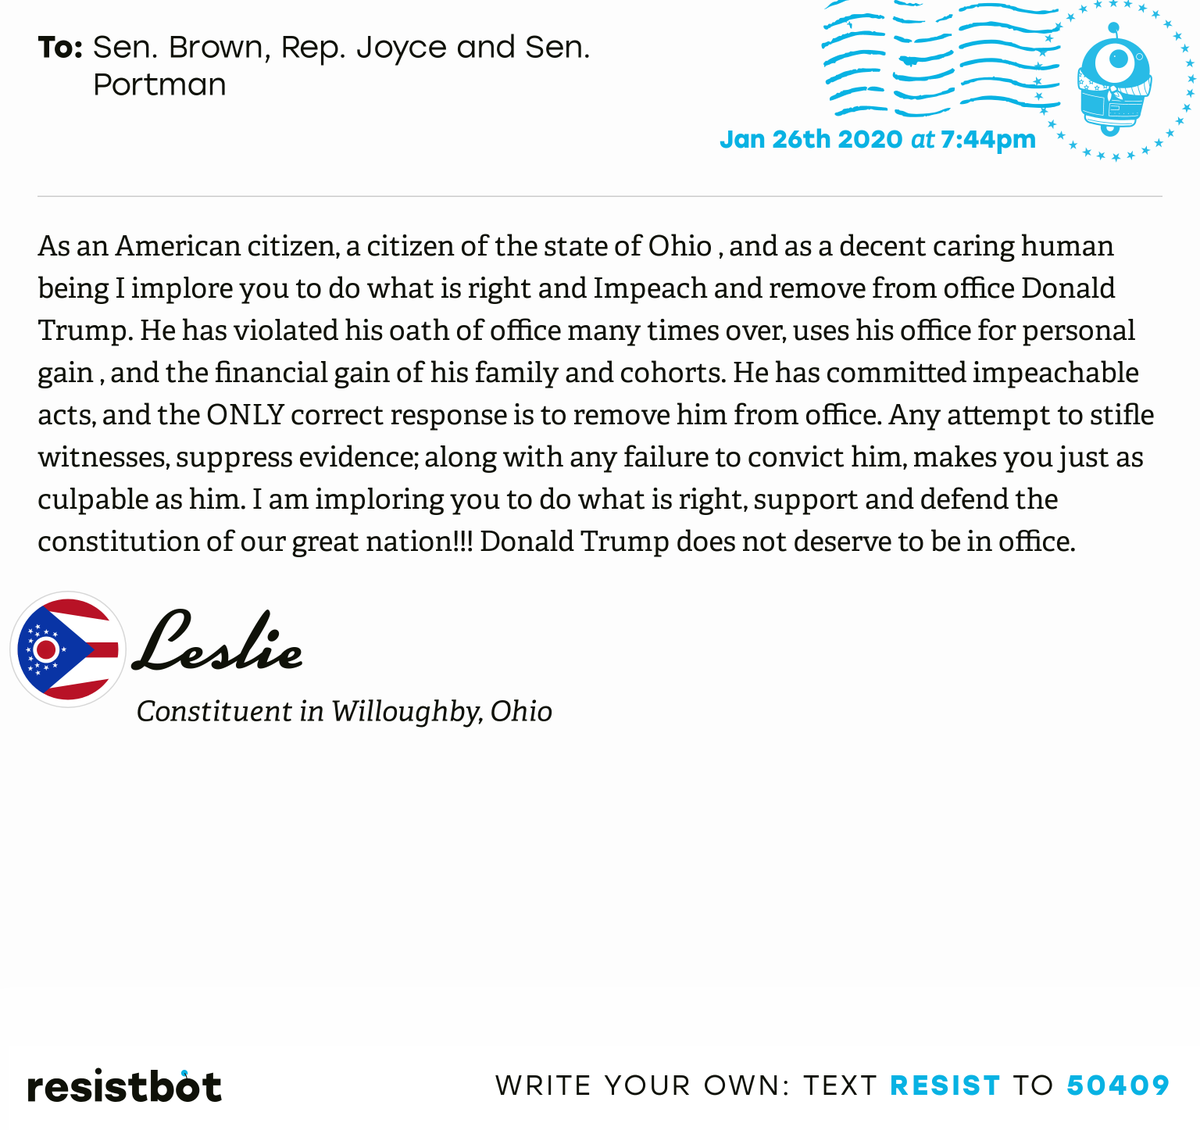 I just delivered this letter from Leslie in Willoughby, Ohio to @SenSherrodBrown, @RepDaveJoyce and @SenRobPortman #OH14 #OHpol #ImpeachmentInquiry